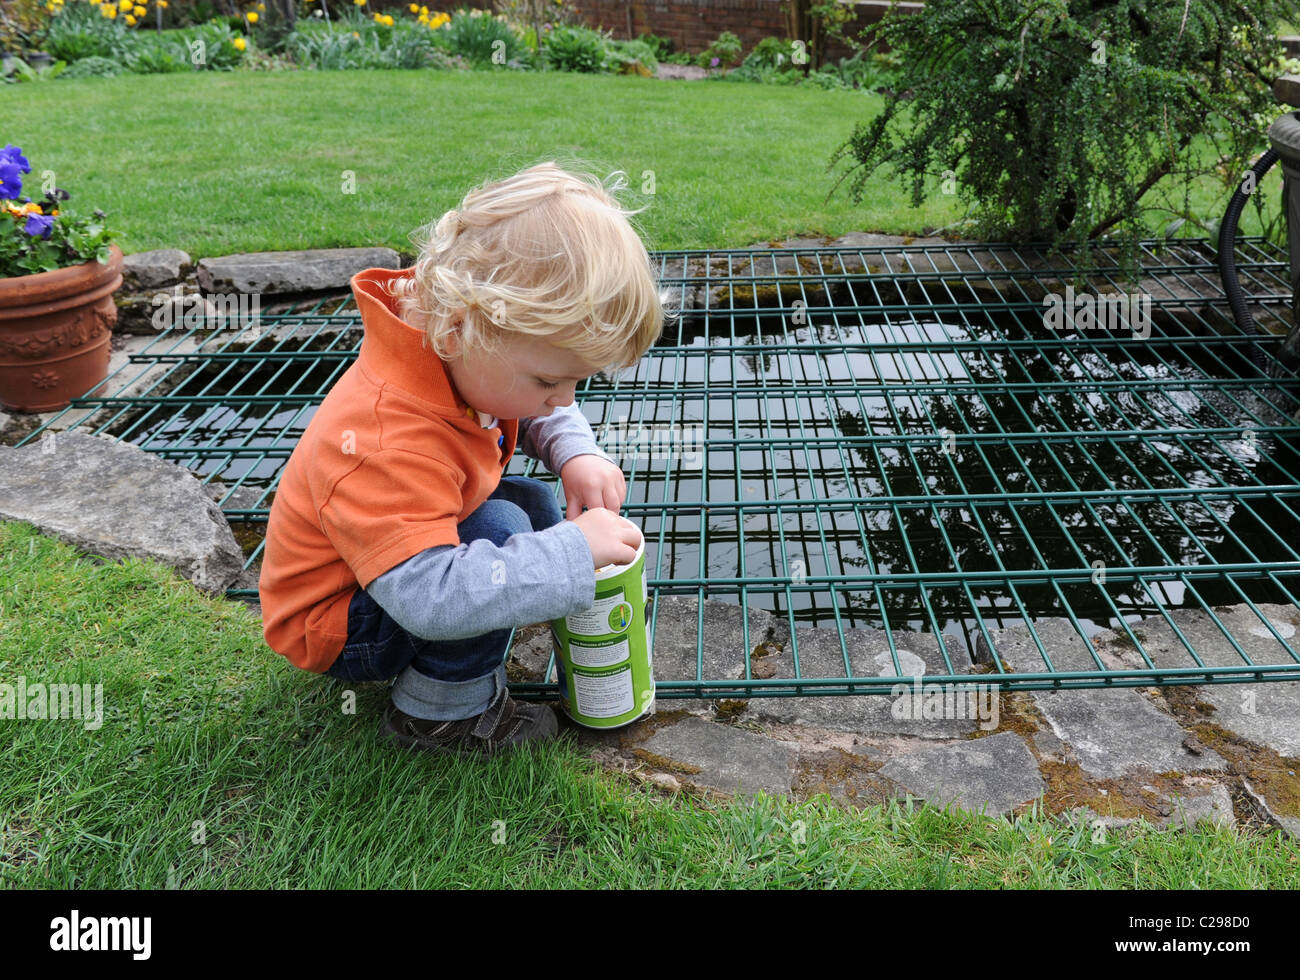 Child Playing By Garden Pond With A Safety Guard Stock